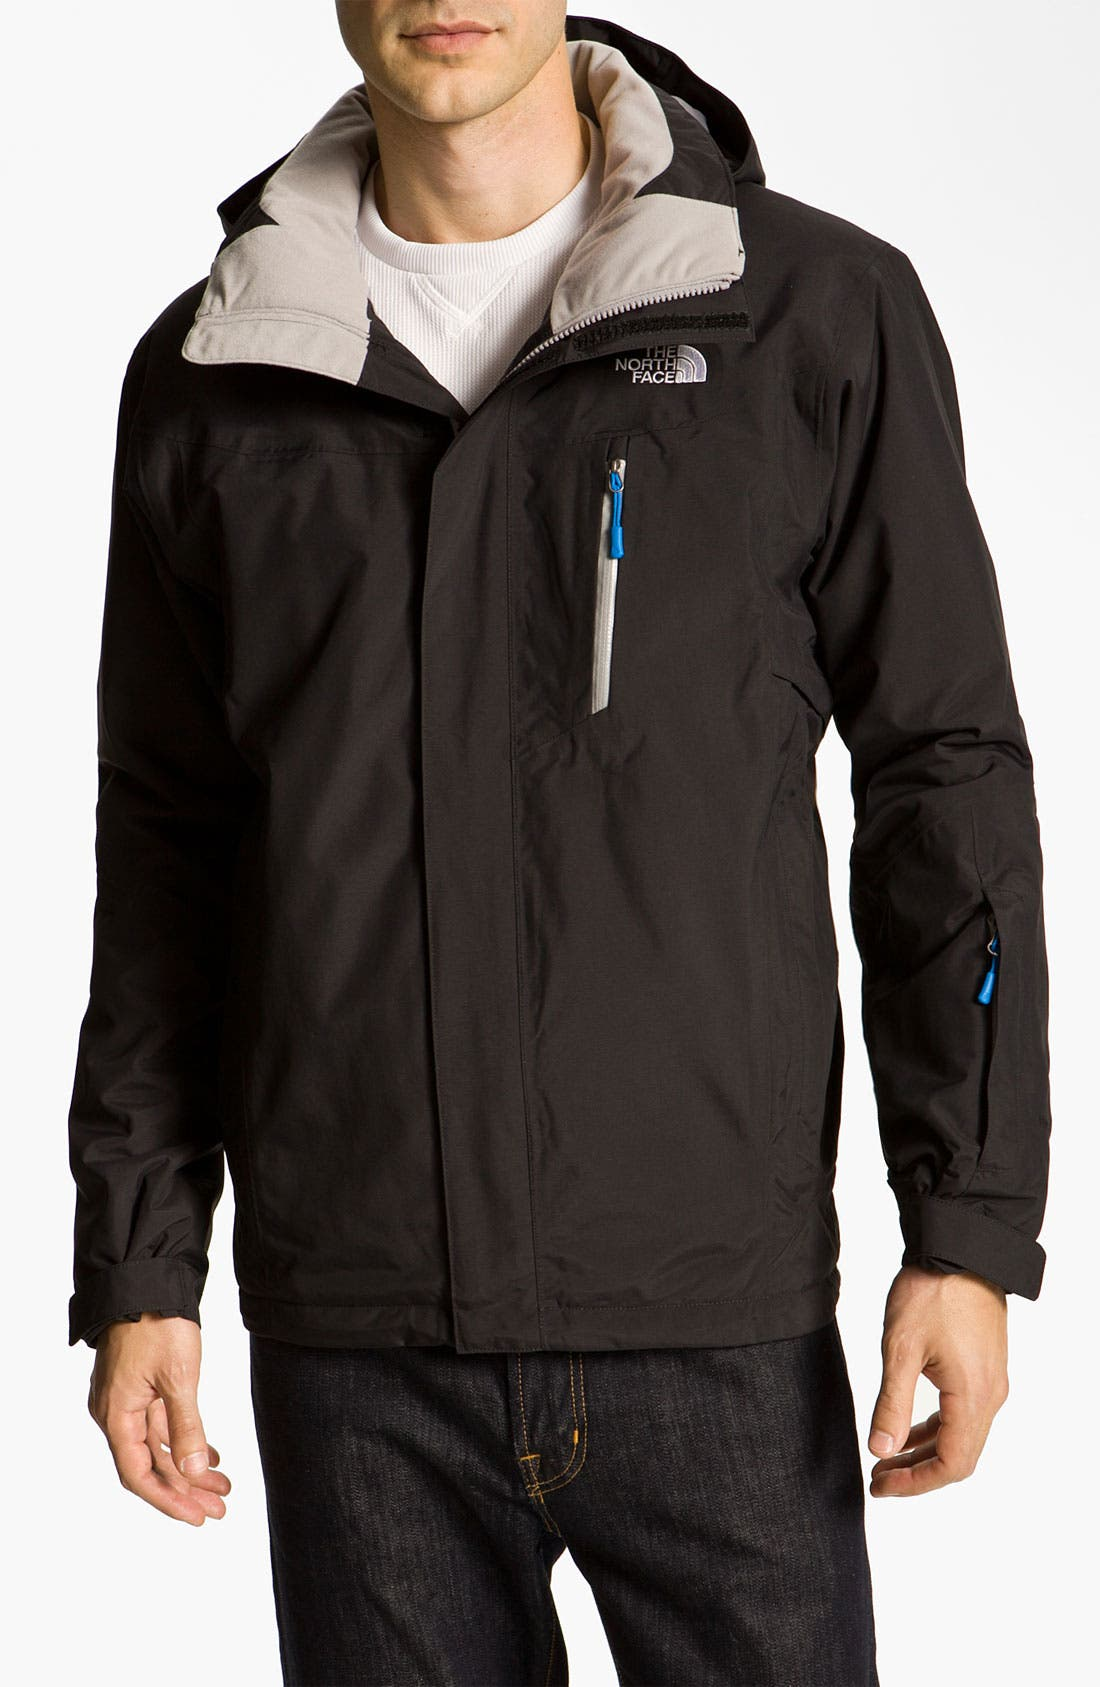 Alternate Image 1 Selected - The North Face 'Peskara' Jacket